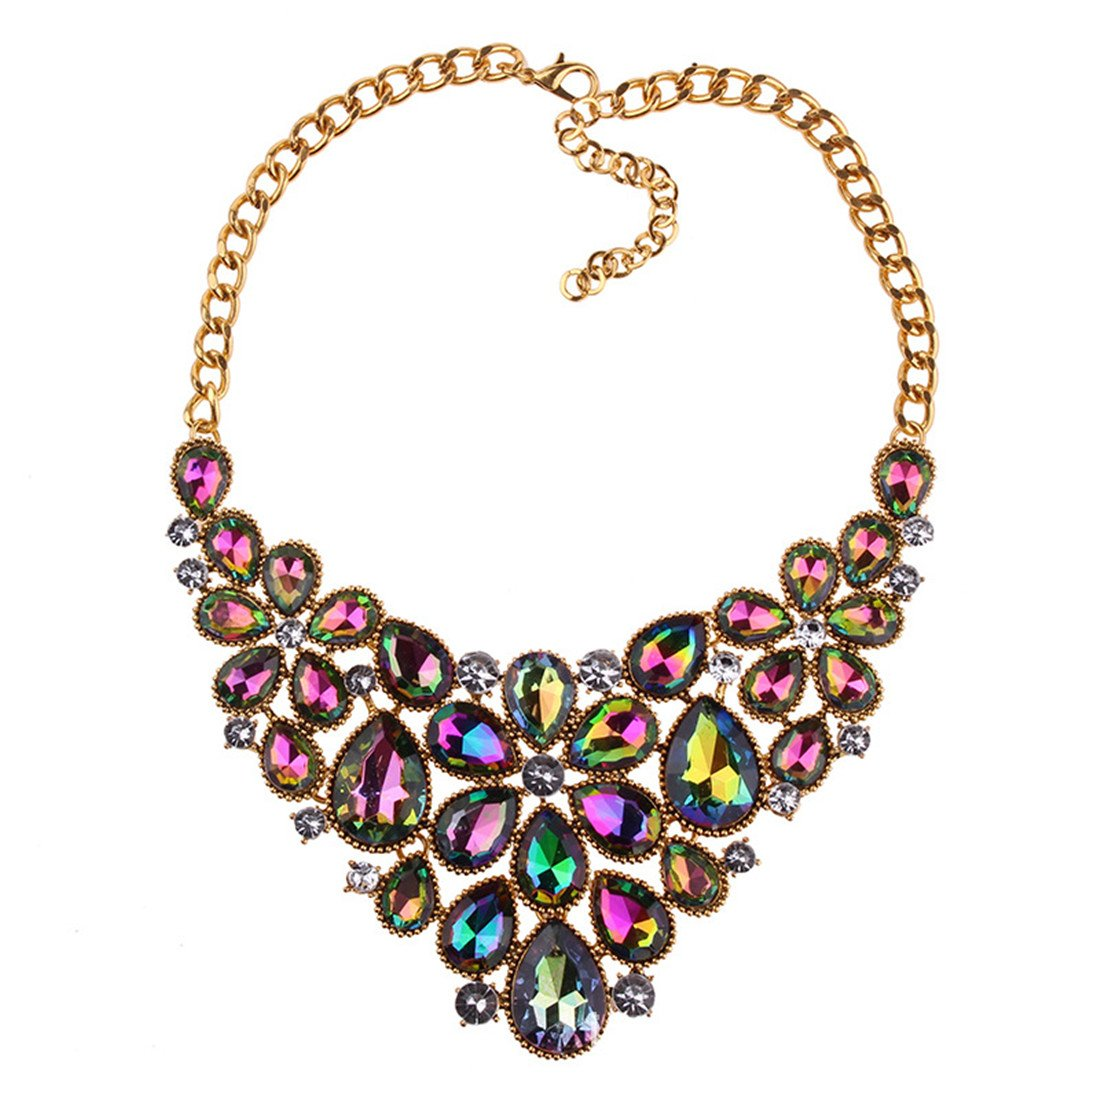 LOHOME Colorful Crystal Rhinestone Set Tassel Choker Statement Bib Necklace for Women